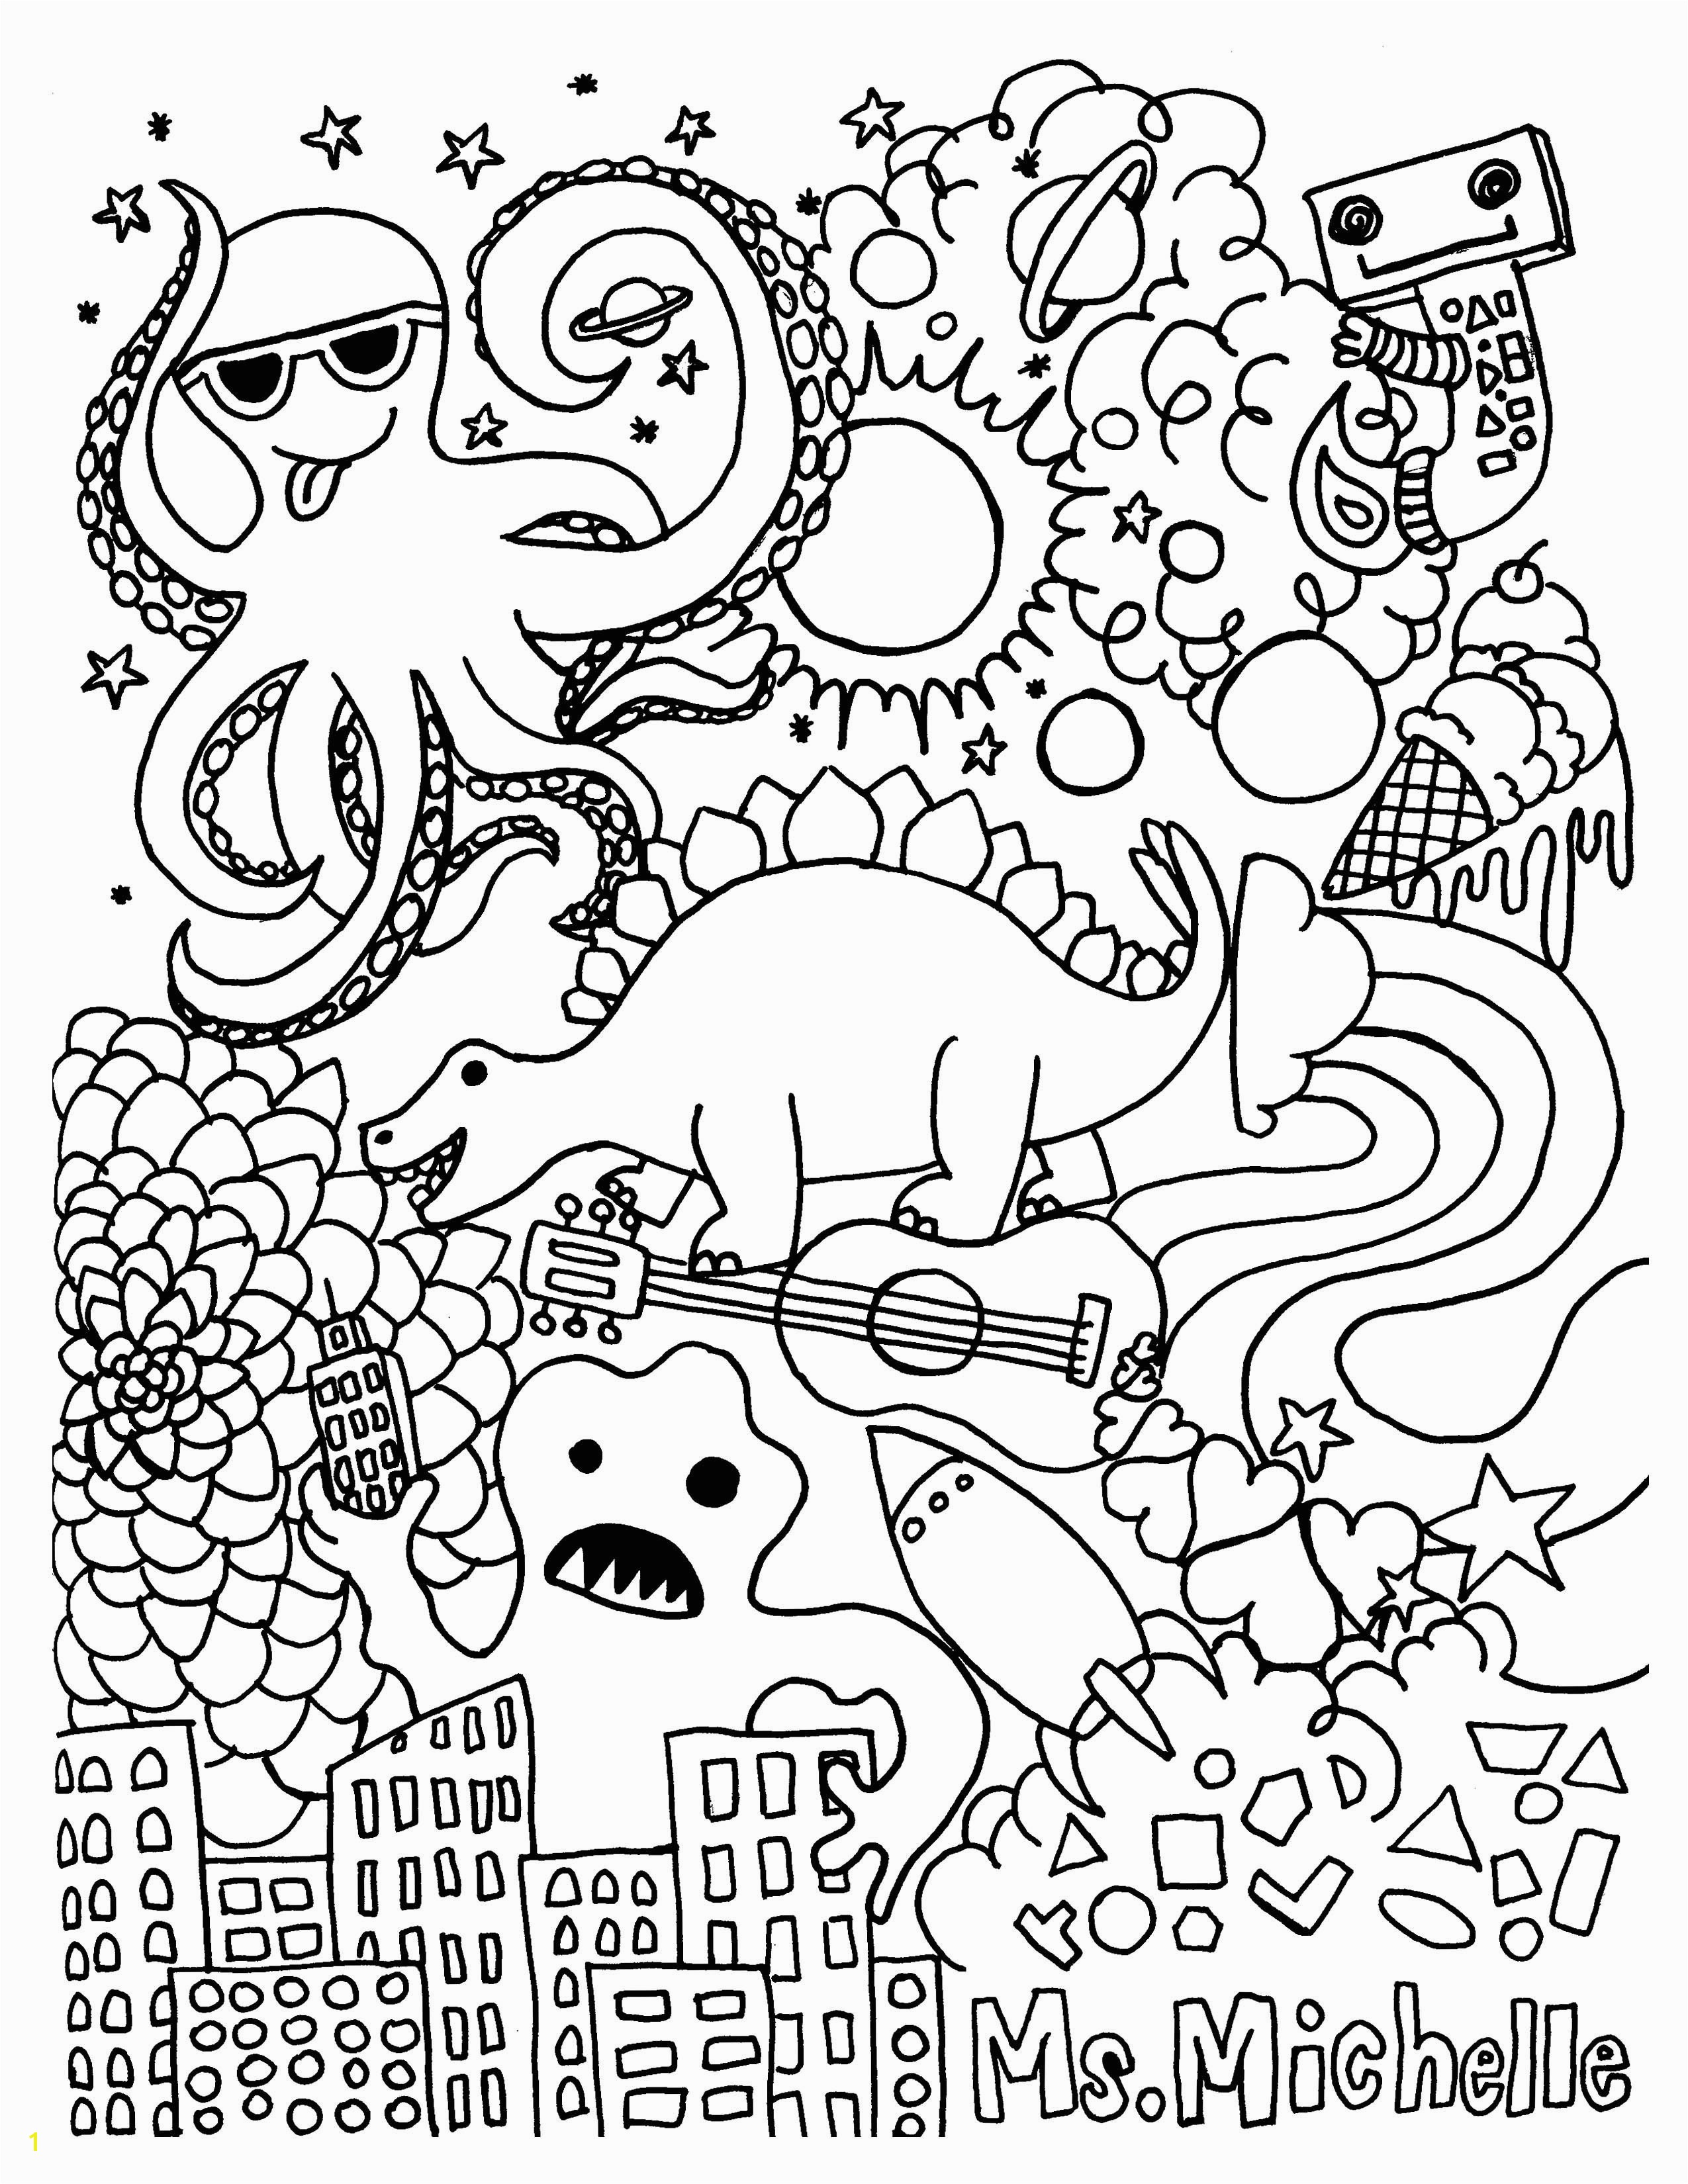 Idiom Coloring Pages Idiom Coloring Pages Awesome Coloring Pages for Kids Printable